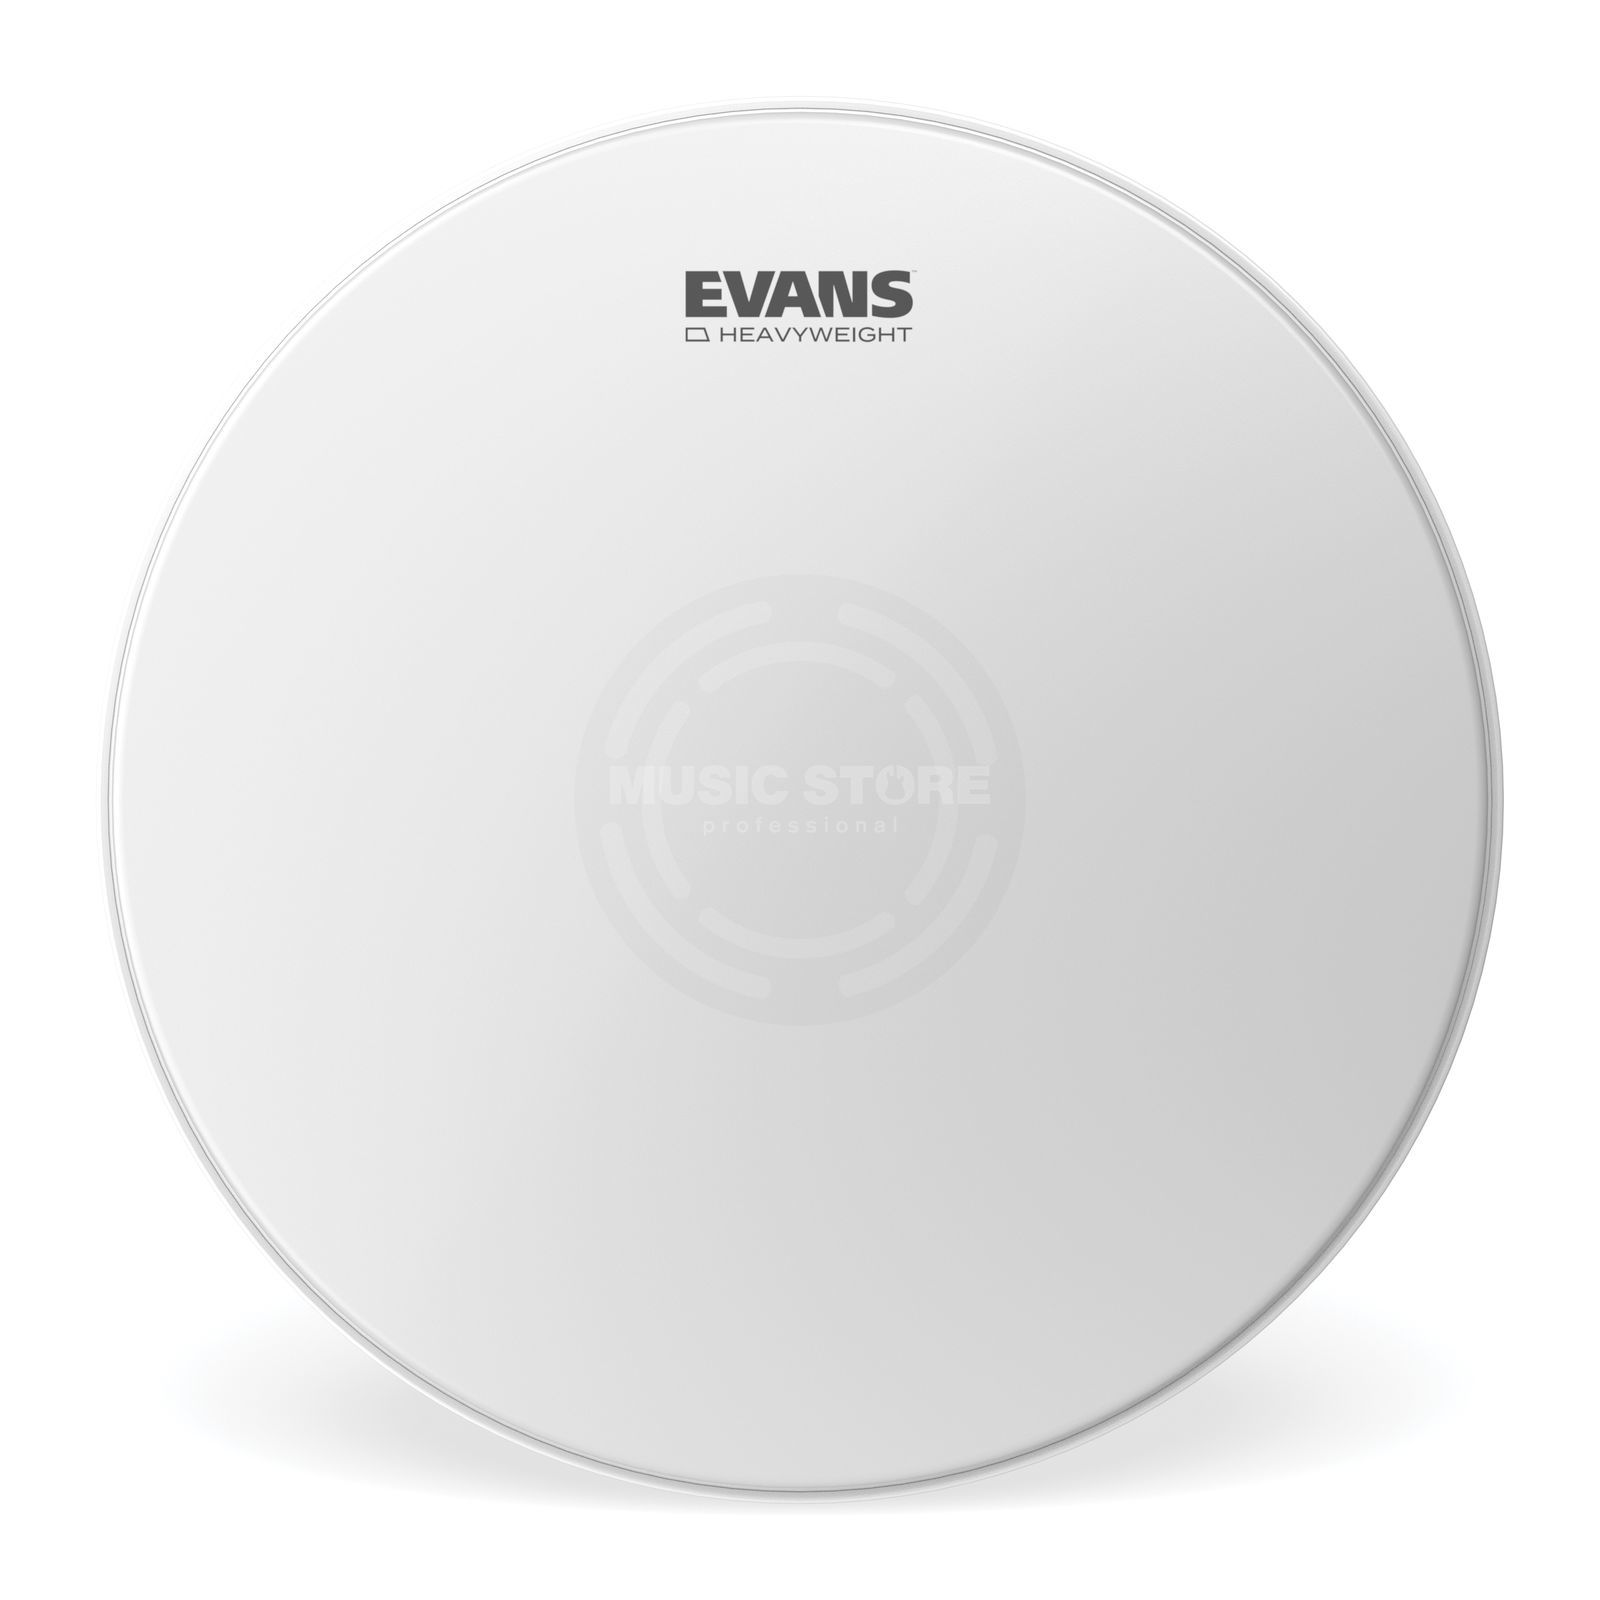 "Evans Heavyweight Coated B14HW, 14"", Snare Batter Produktbild"